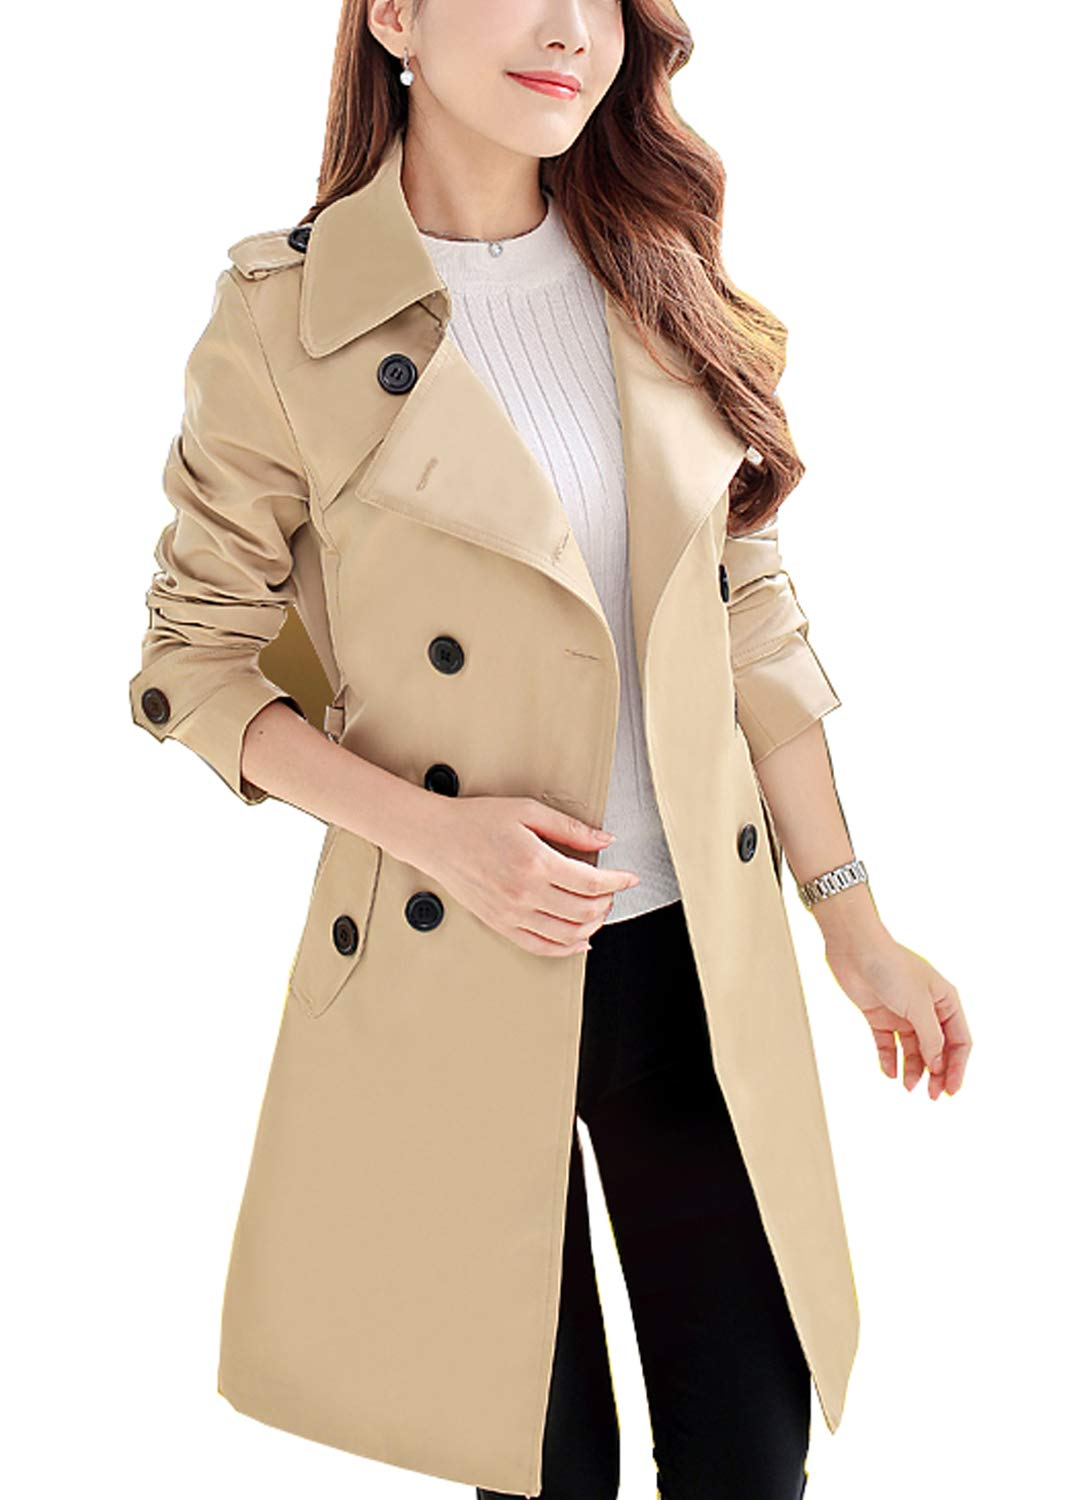 FARVALUE Women's Double Breasted Trench Coat Classic Belted Lapel Overcoat Khaki X-Large by FARVALUE